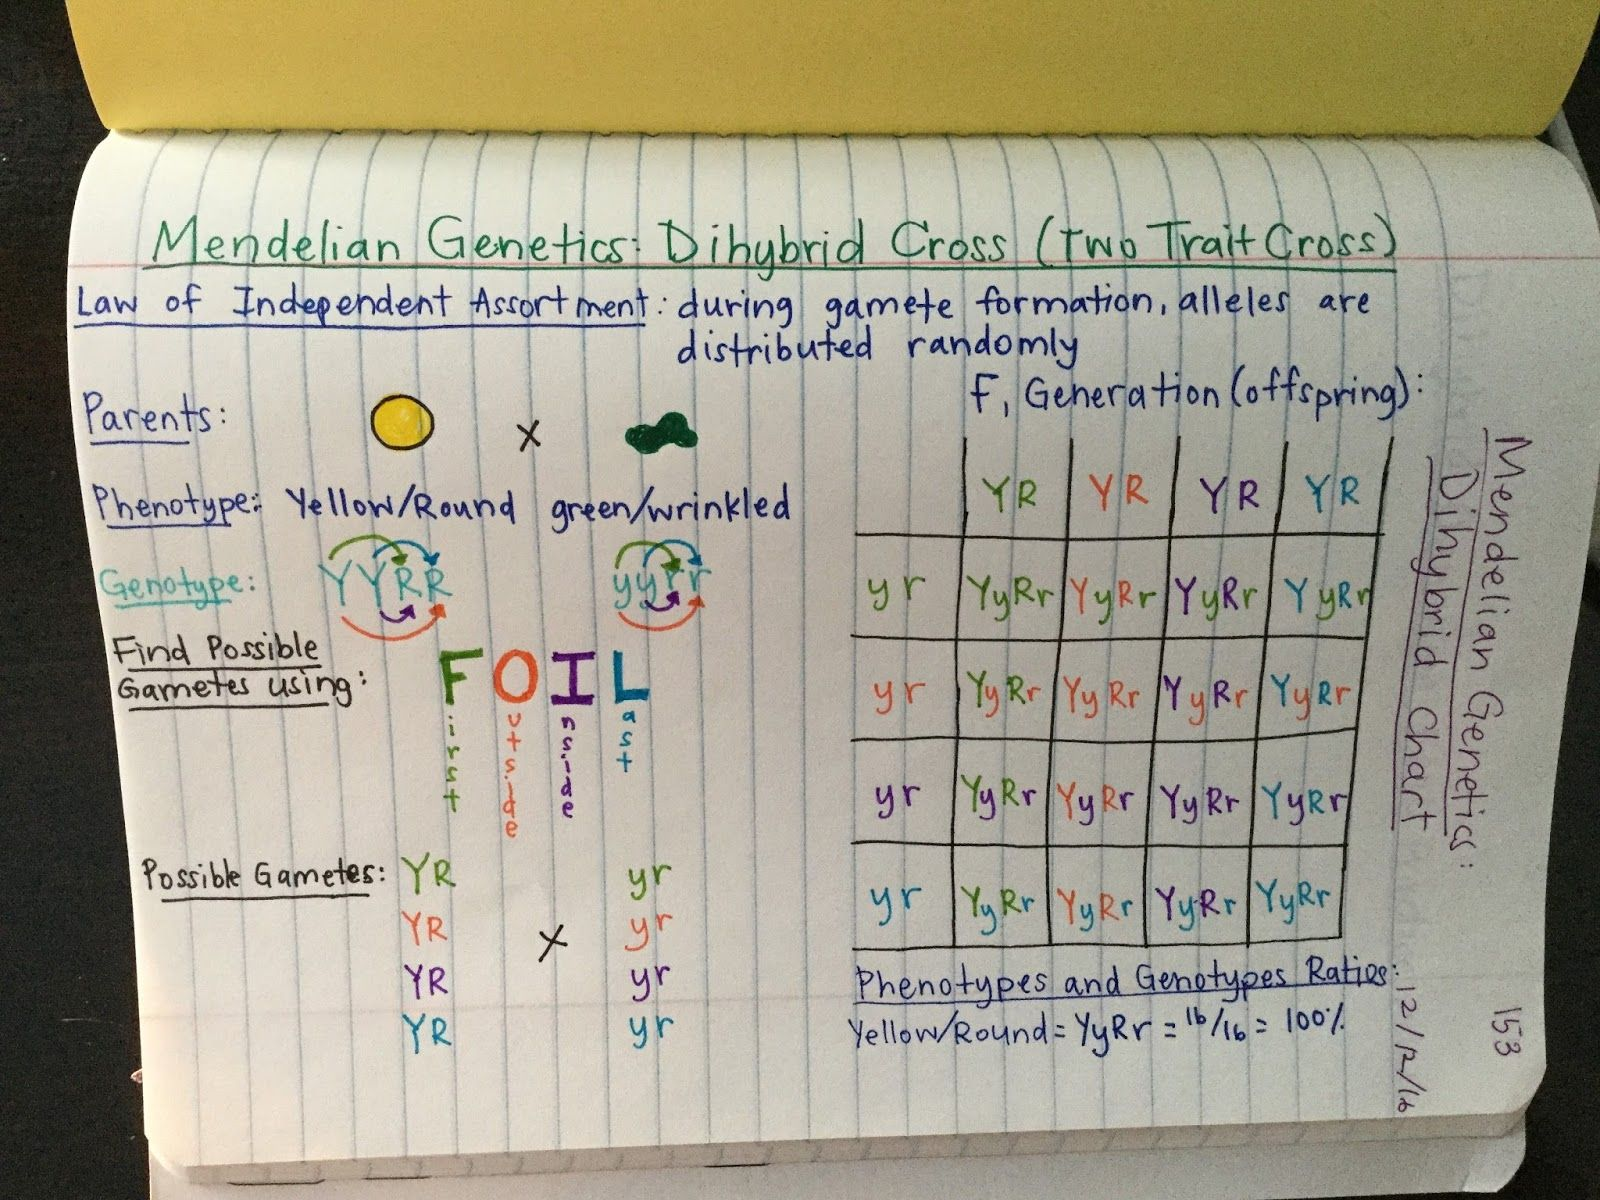 genetics unit edpuzzle videos amoeba sisters foil method gif mendelian genetics dihybrid cross. Black Bedroom Furniture Sets. Home Design Ideas